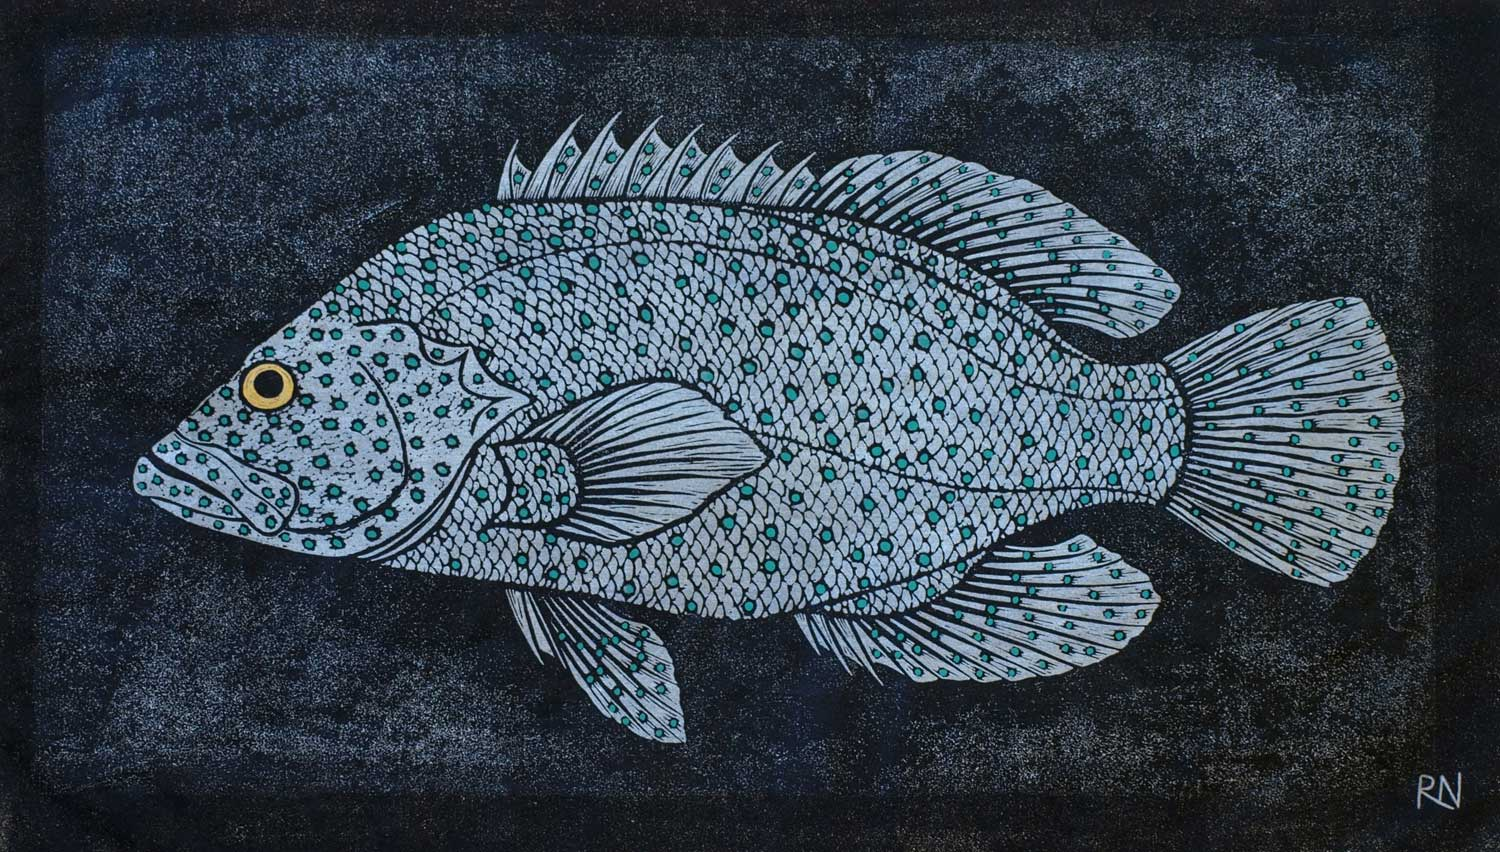 SHOAL IV  30 X 52.5 CM EDITION OF 50  HAND COLOURED LINOCUT ON HANDMADE JAPANESE PAPER  $850